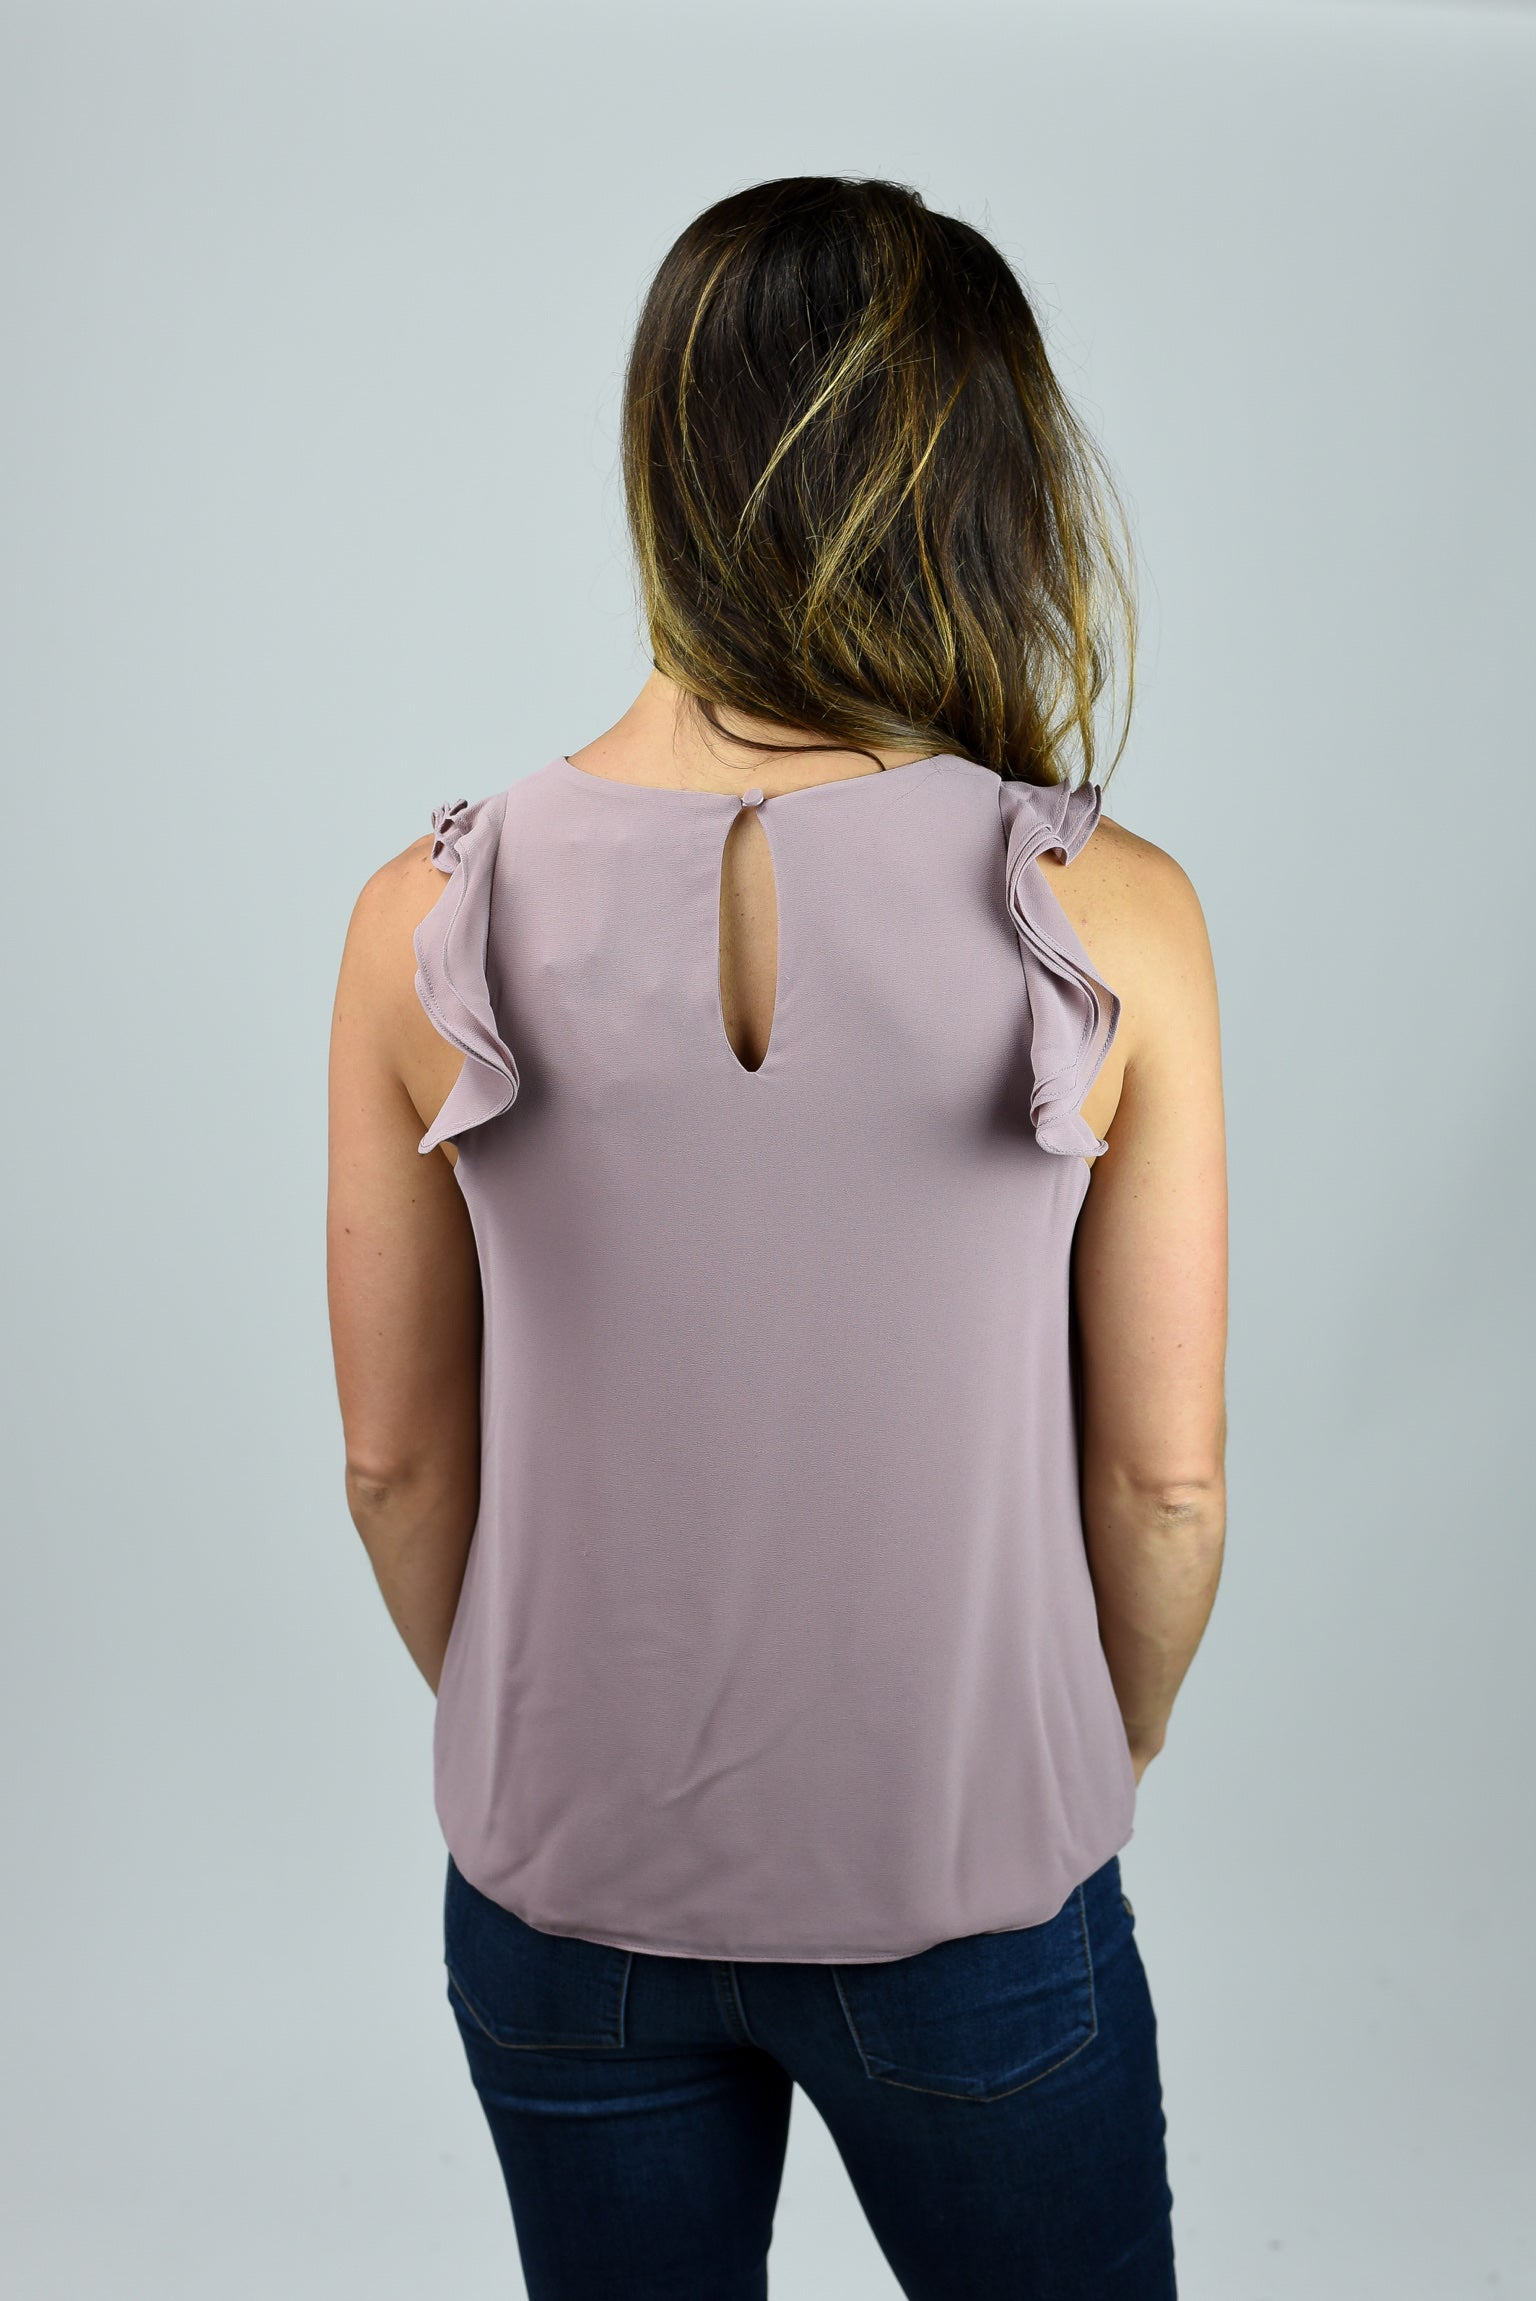 Work Week Ruffle Sleeve Top - Mauve